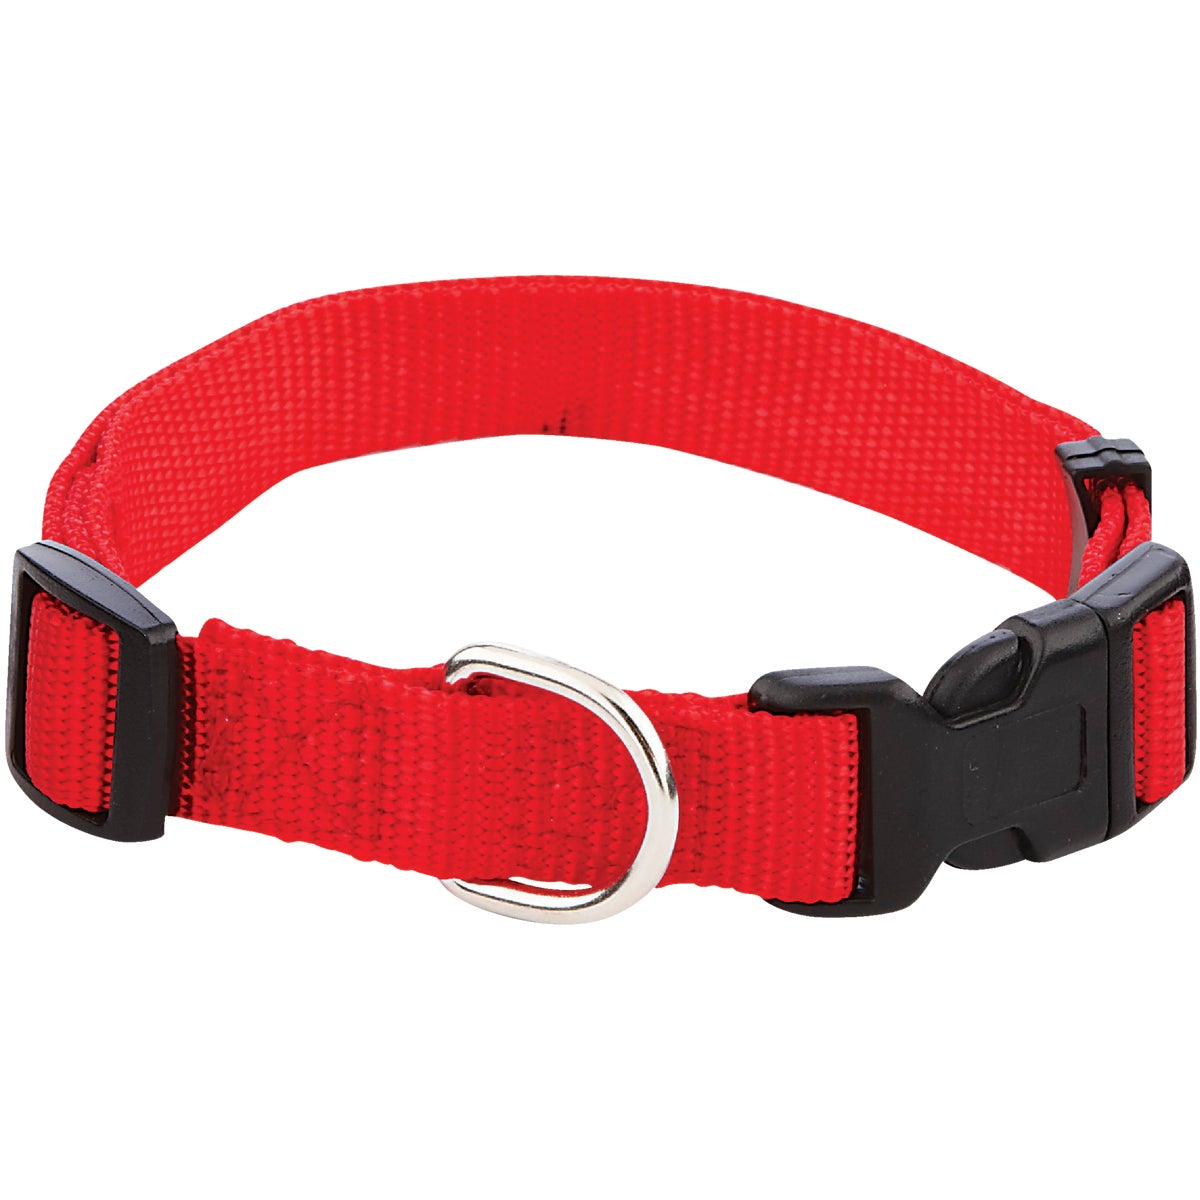 3/4X14-20 NYL ADJ COLLAR - 31442 by Westminster Pet